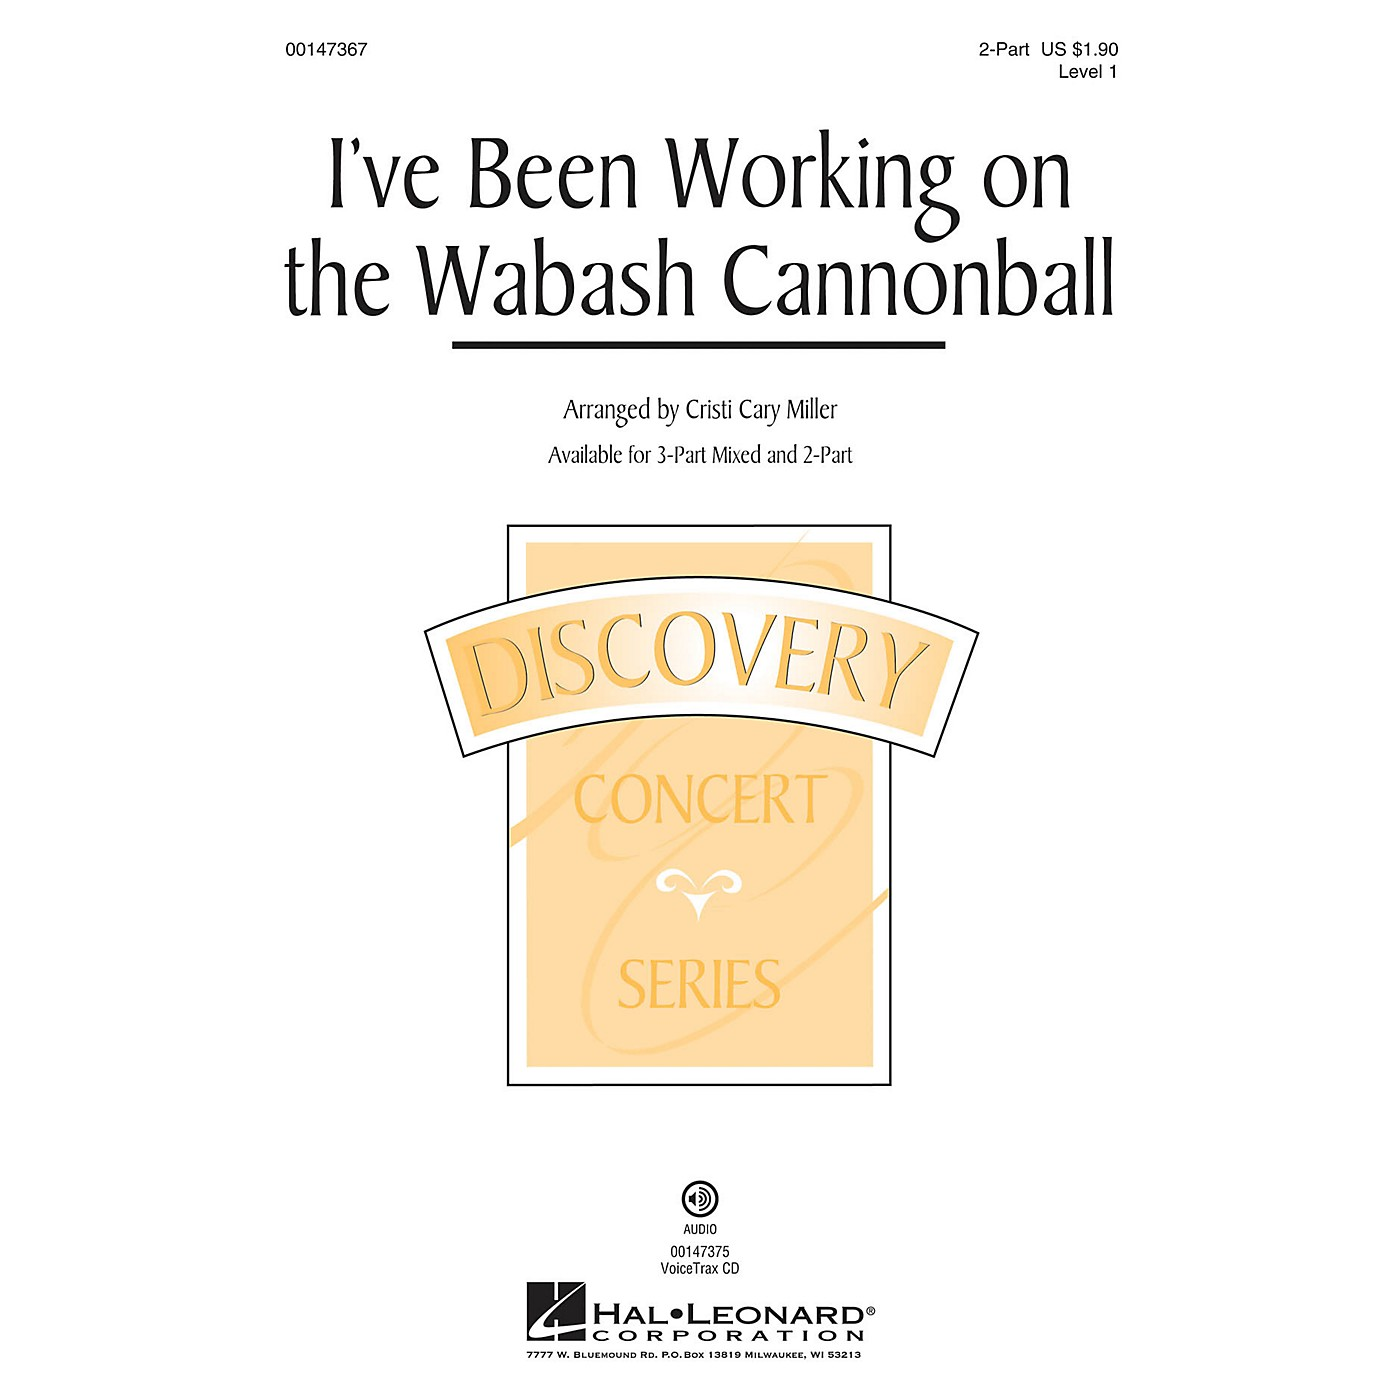 Hal Leonard I've Been Working on the Wabash Cannonball 2-Part arranged by Cristi Cary Miller thumbnail